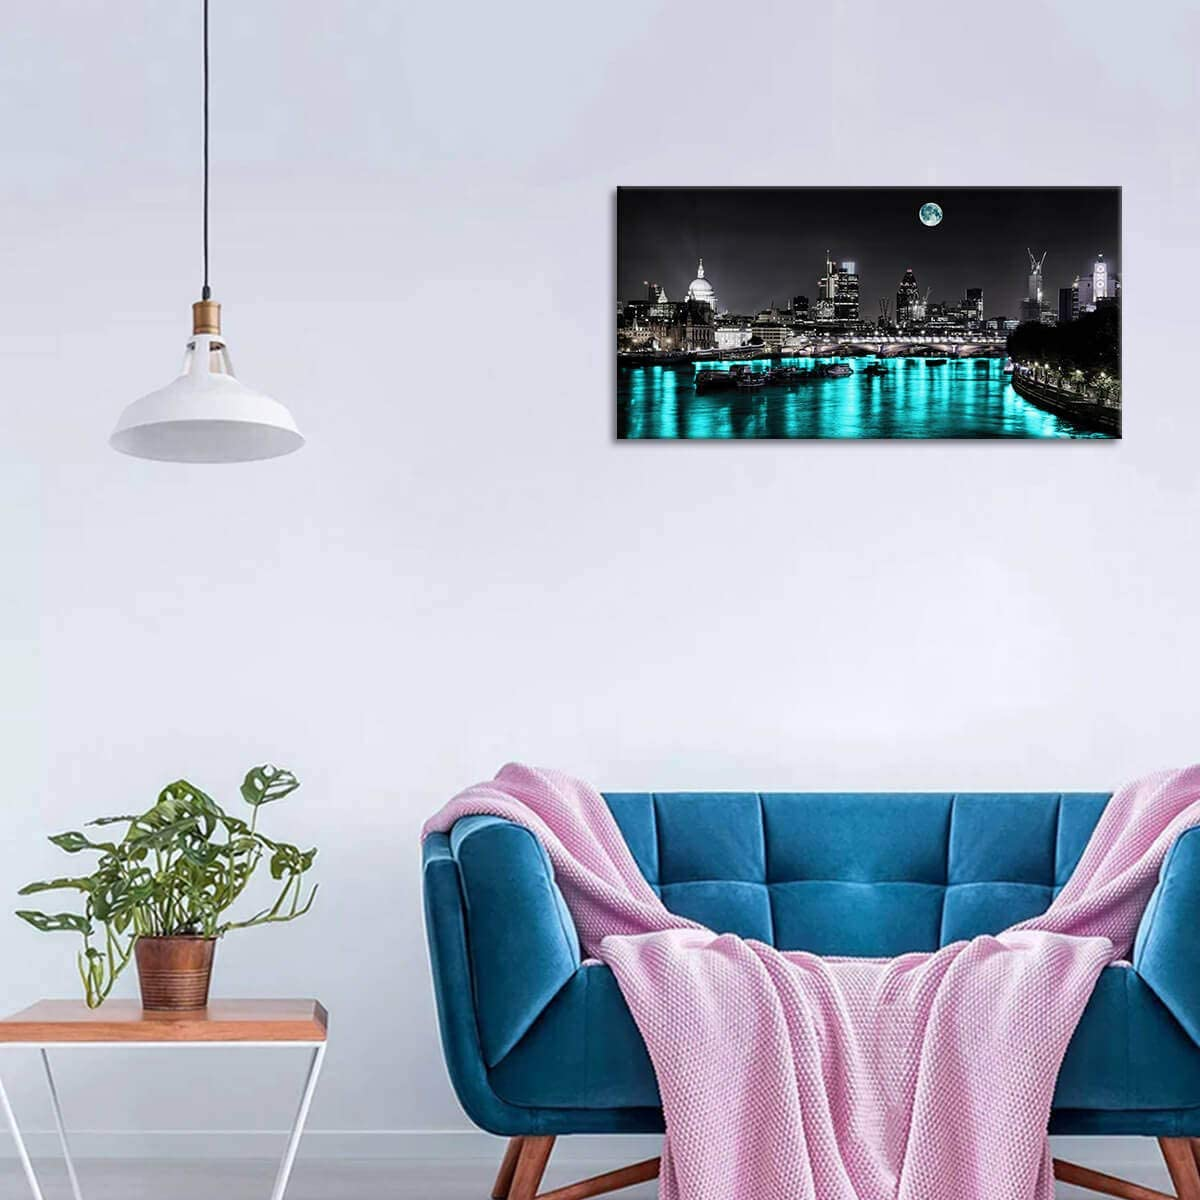 Bathroom Decor Wall Art Blue Succulent Pictures Wall Decor Bling Artwork for Home Walls Restroom Decor Flower Wall Pictures for Bedroom Wall Decorations for Home Office Canvas Art 20x40inch